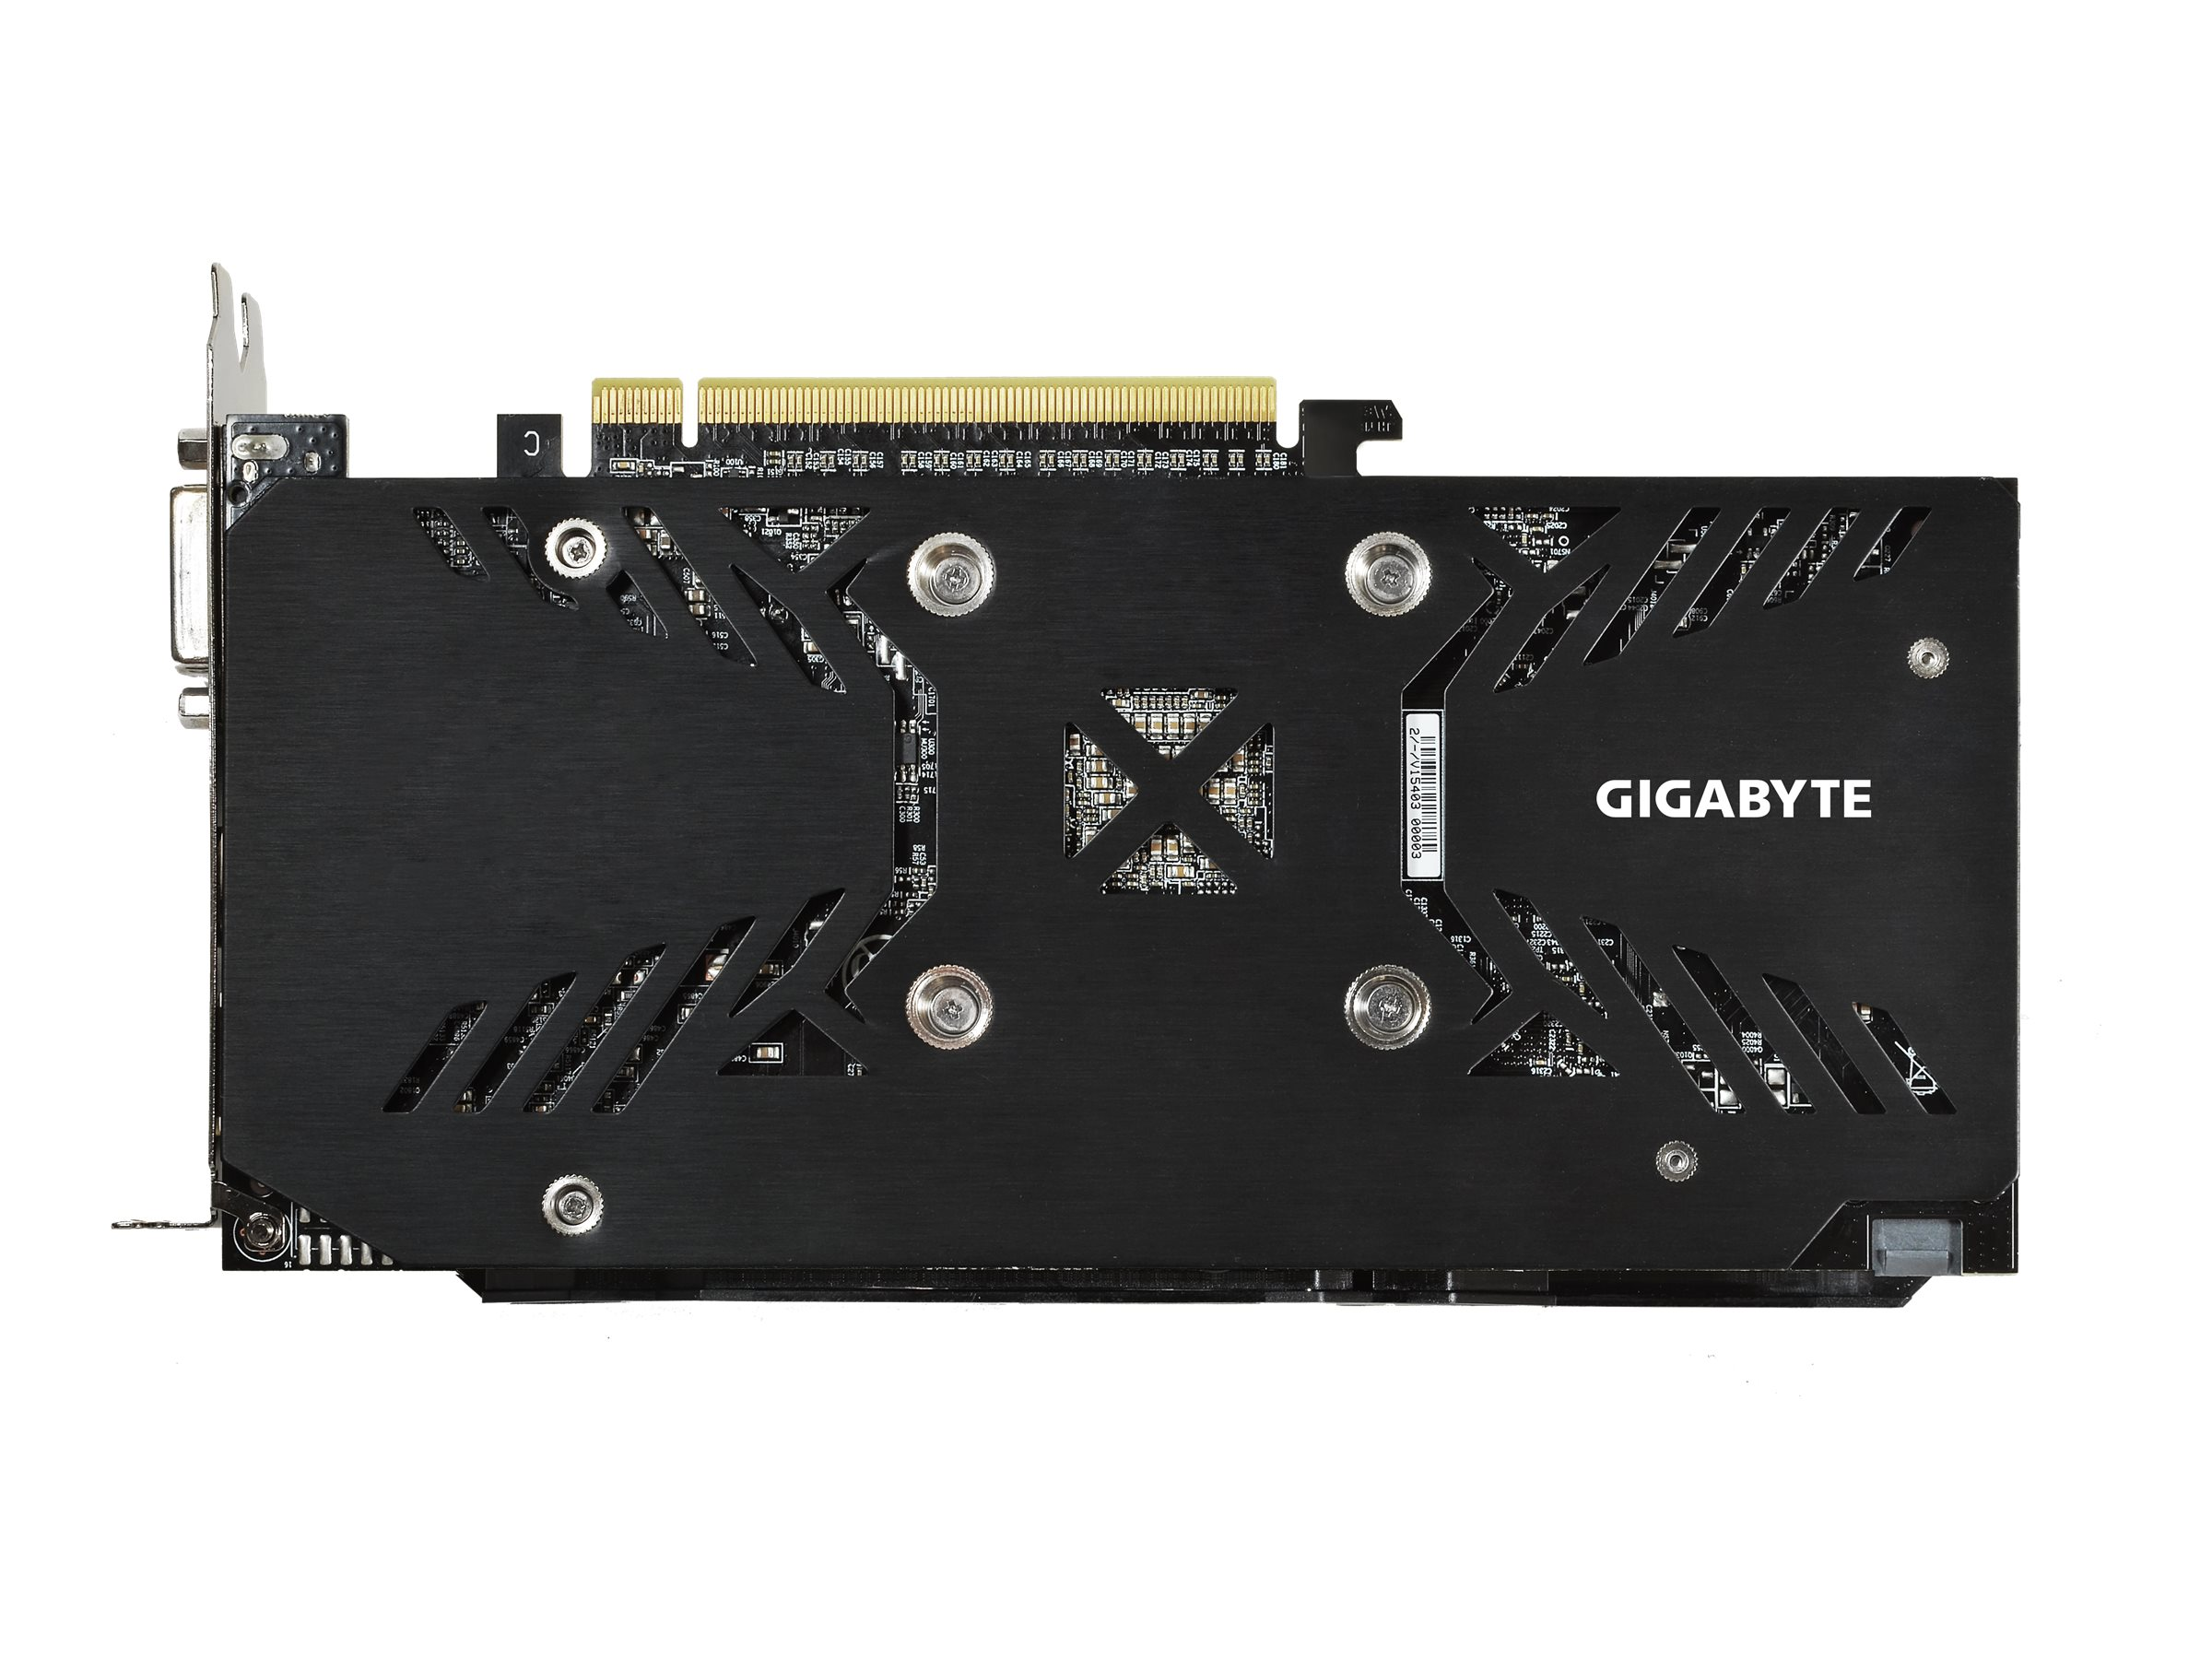 Gigabyte Technology GV-R938XG1 GAMING-4GD Image 4